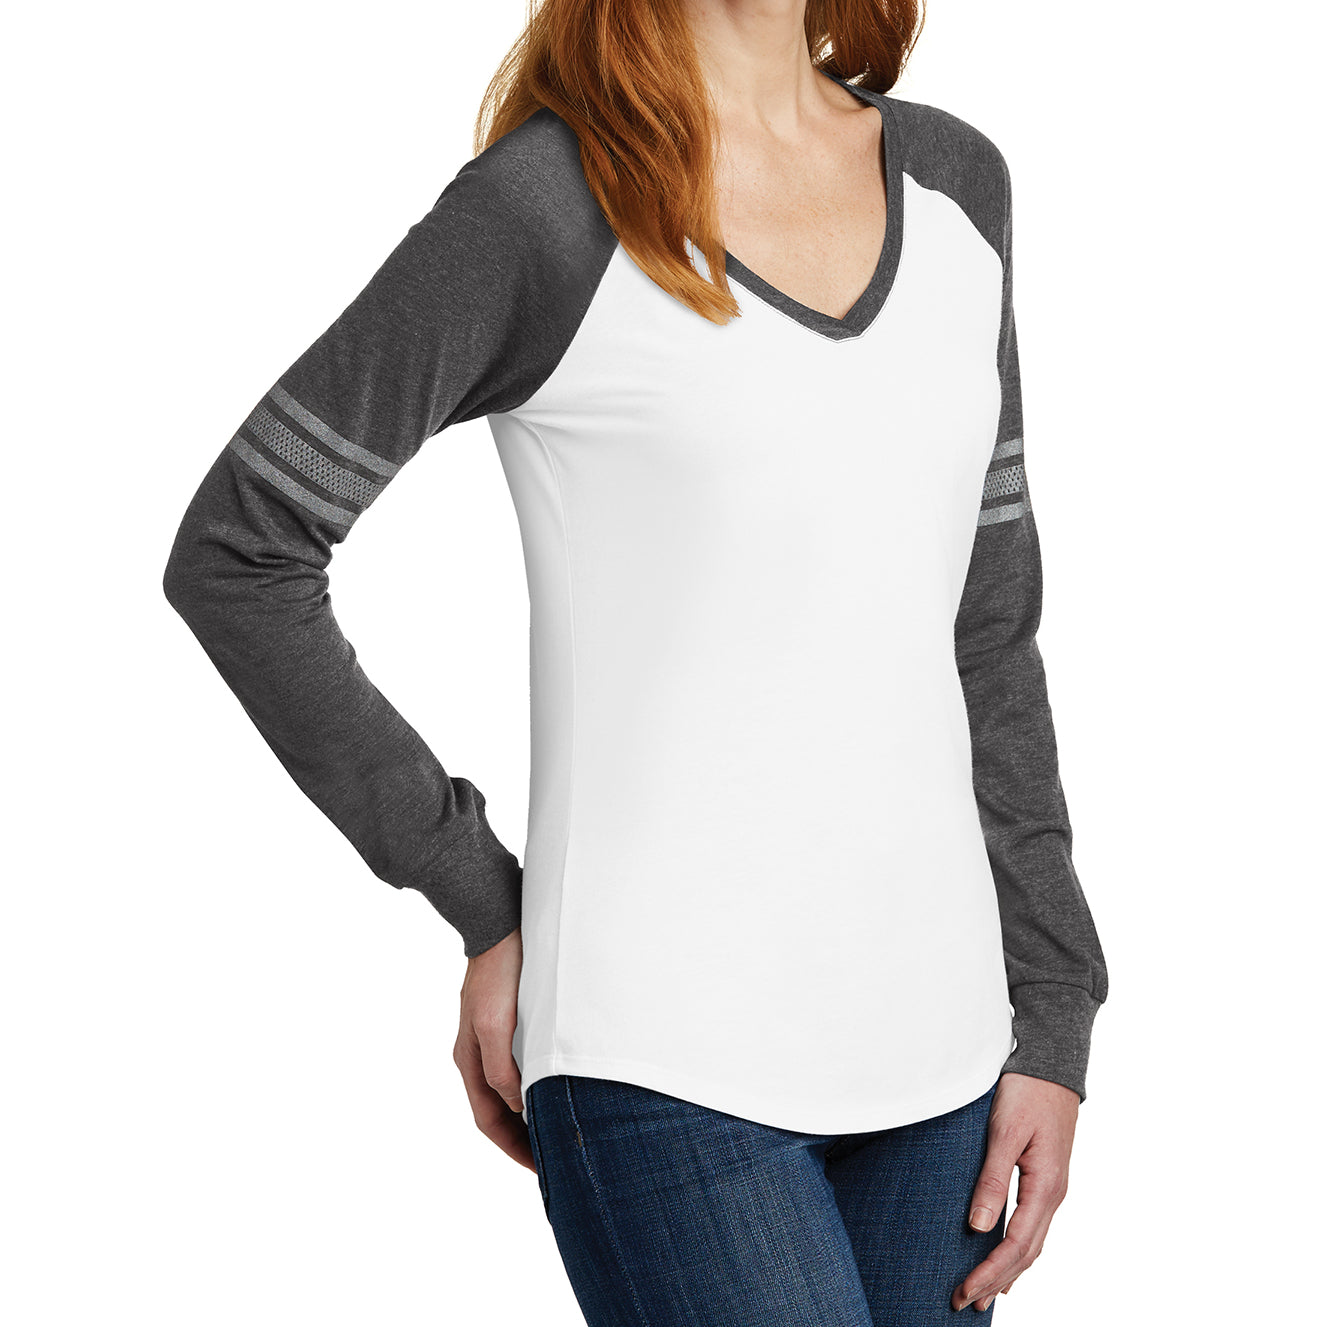 Women's Game Long Sleeve V-Neck Tee - White/ Heathered Charcoal/ Silver - Side